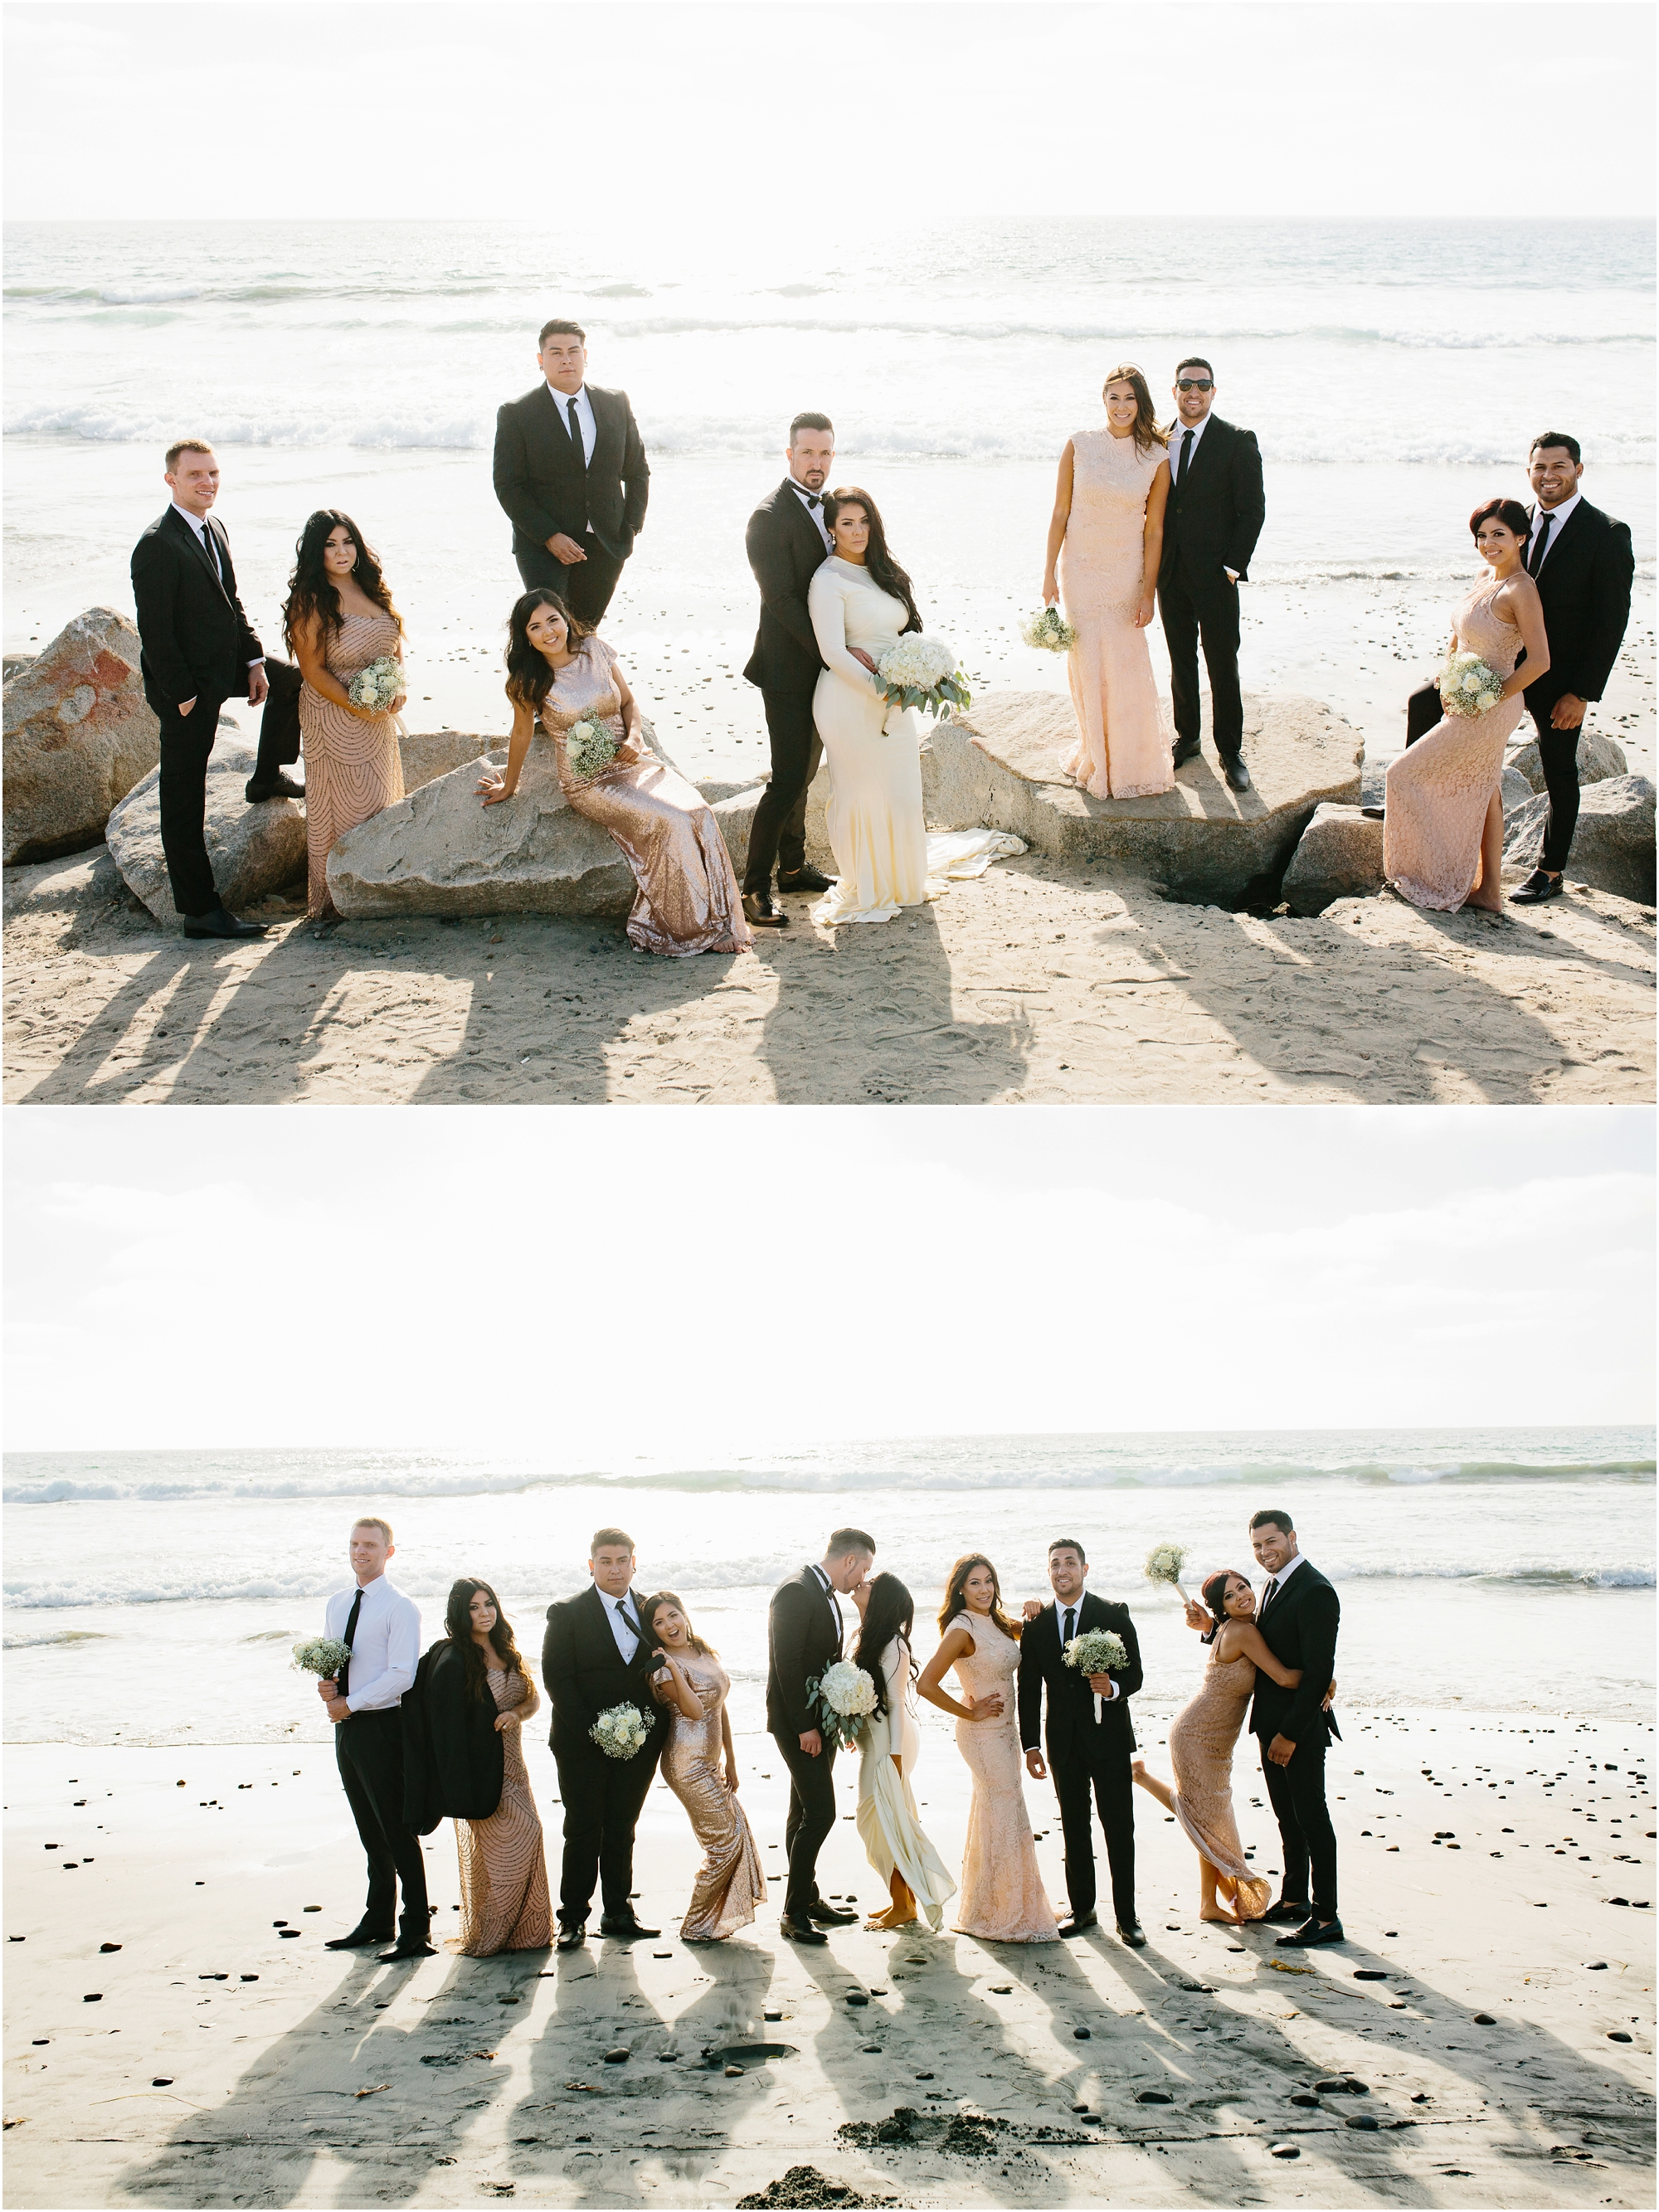 Beach Bridal Party Photos - http://brittneyhannonphotography.com